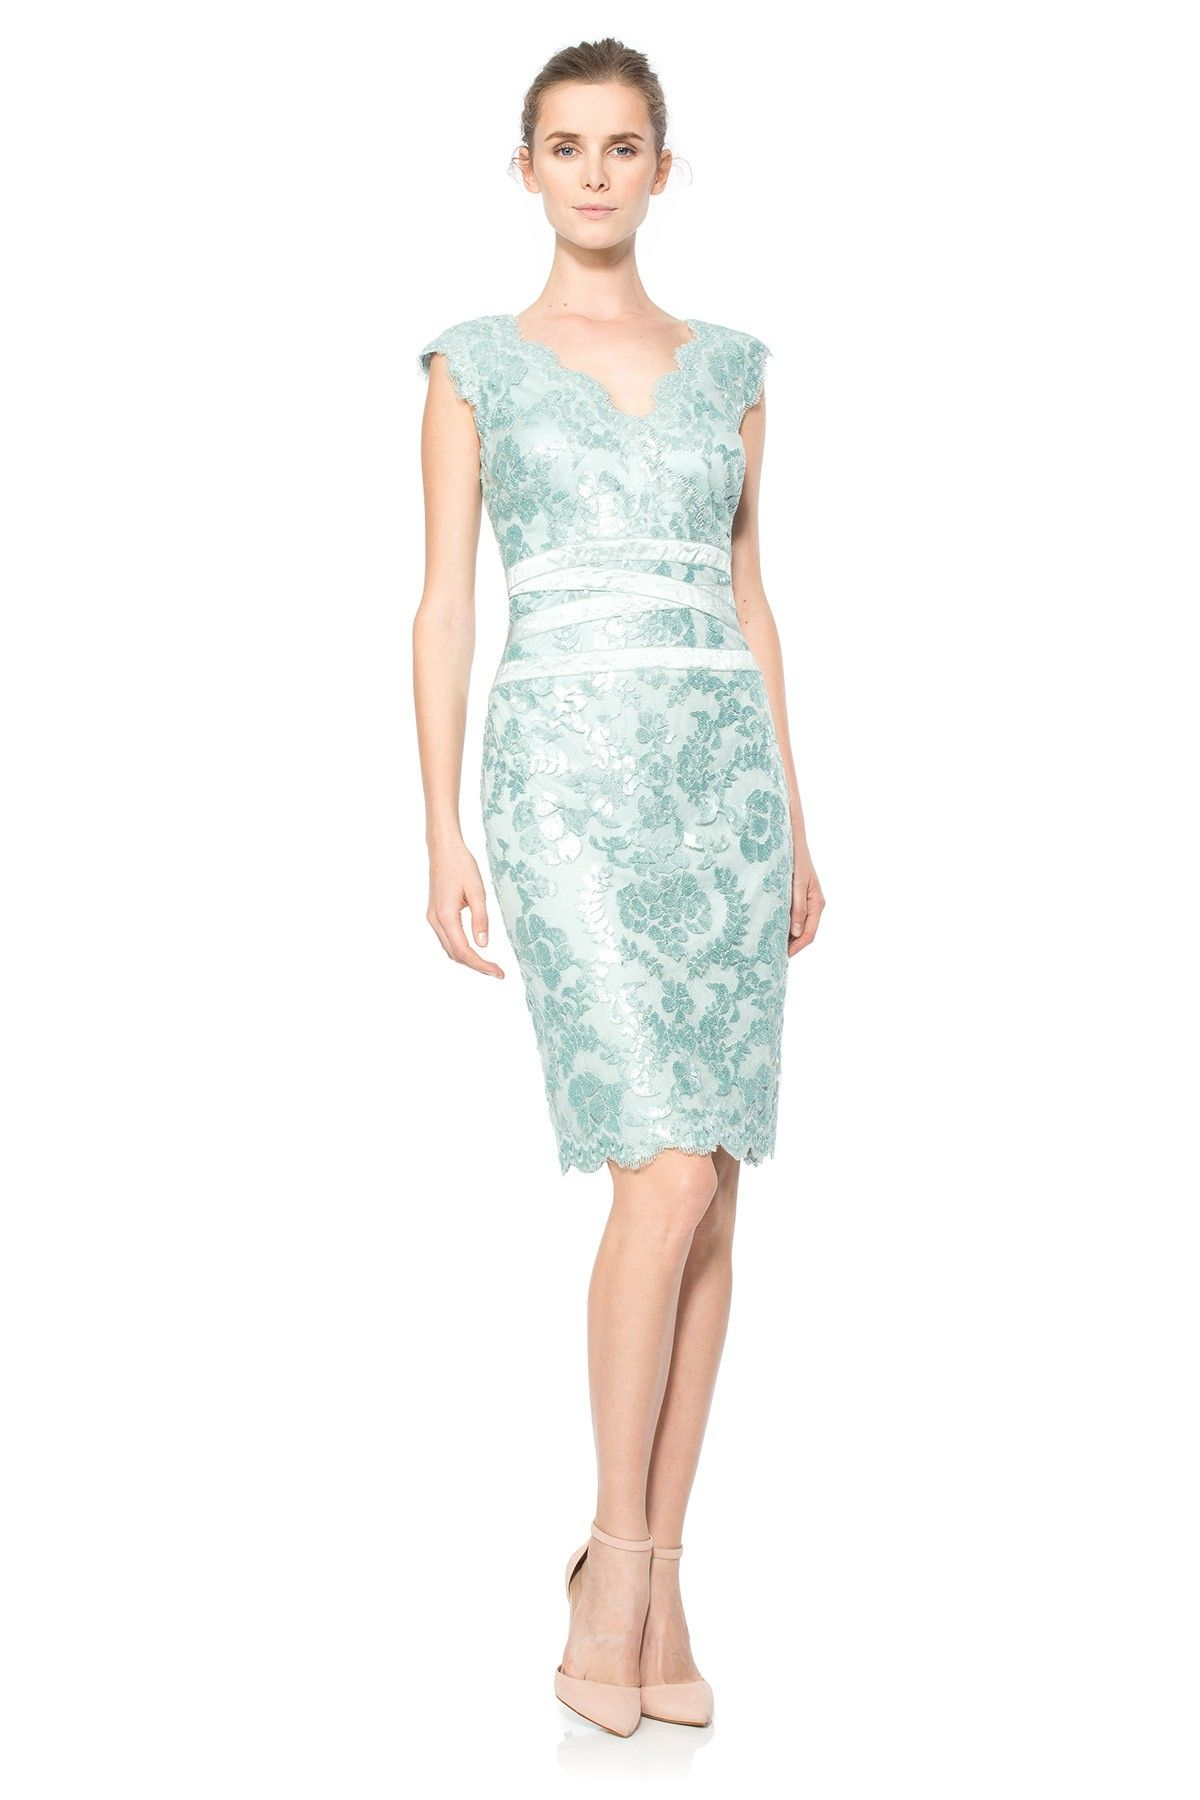 4d83d099 Paillette Embroidered Lace Banded Dress in Mint | Tadashi Shoji ...